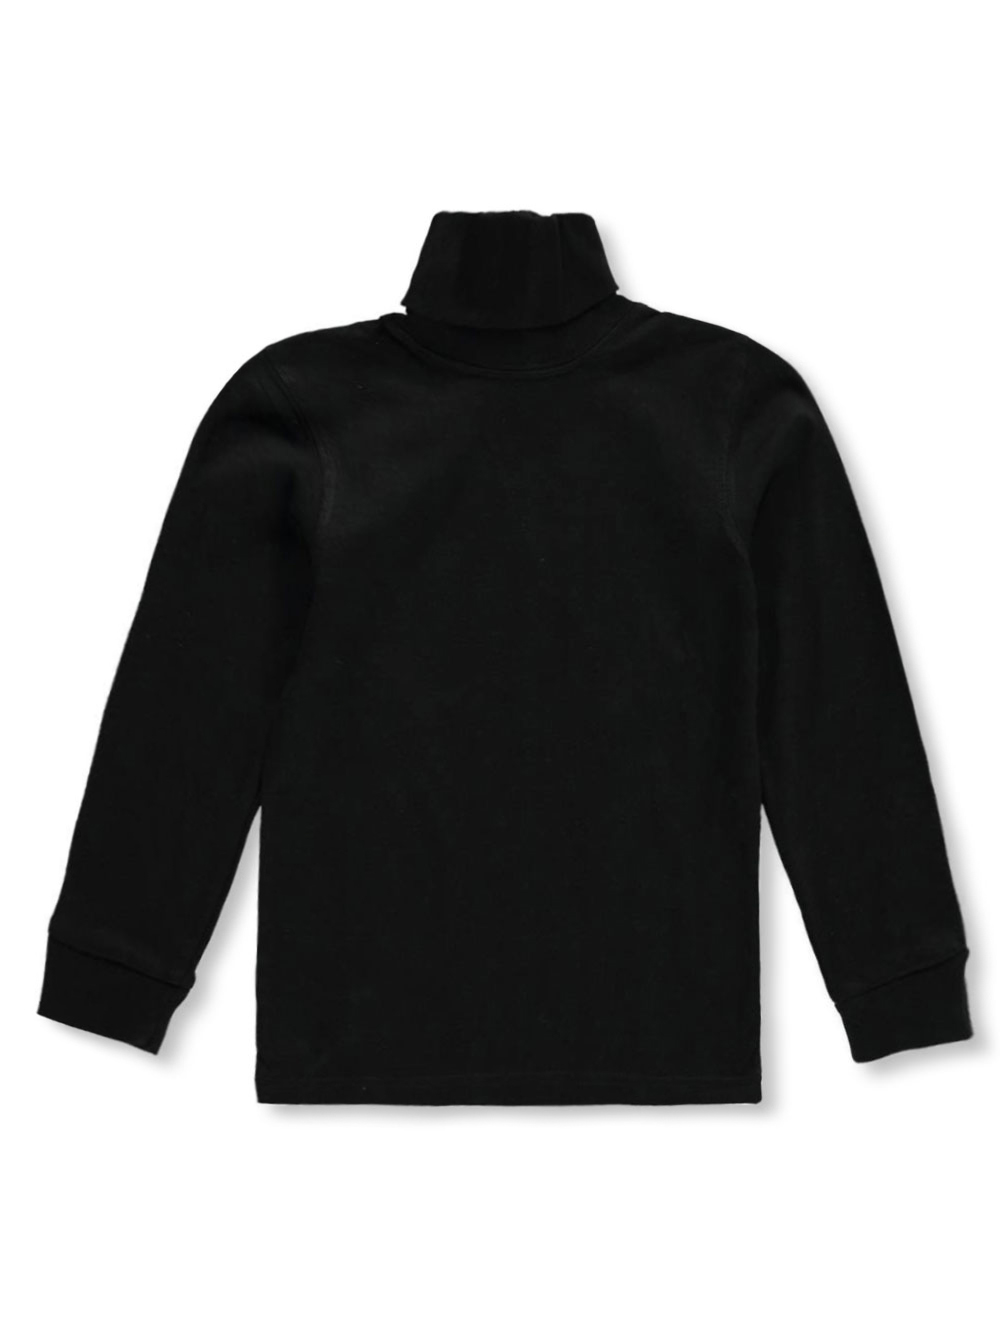 Image of French Toast Little Boys Toddler Basic Turtleneck Sizes 2T  4T  black 2t